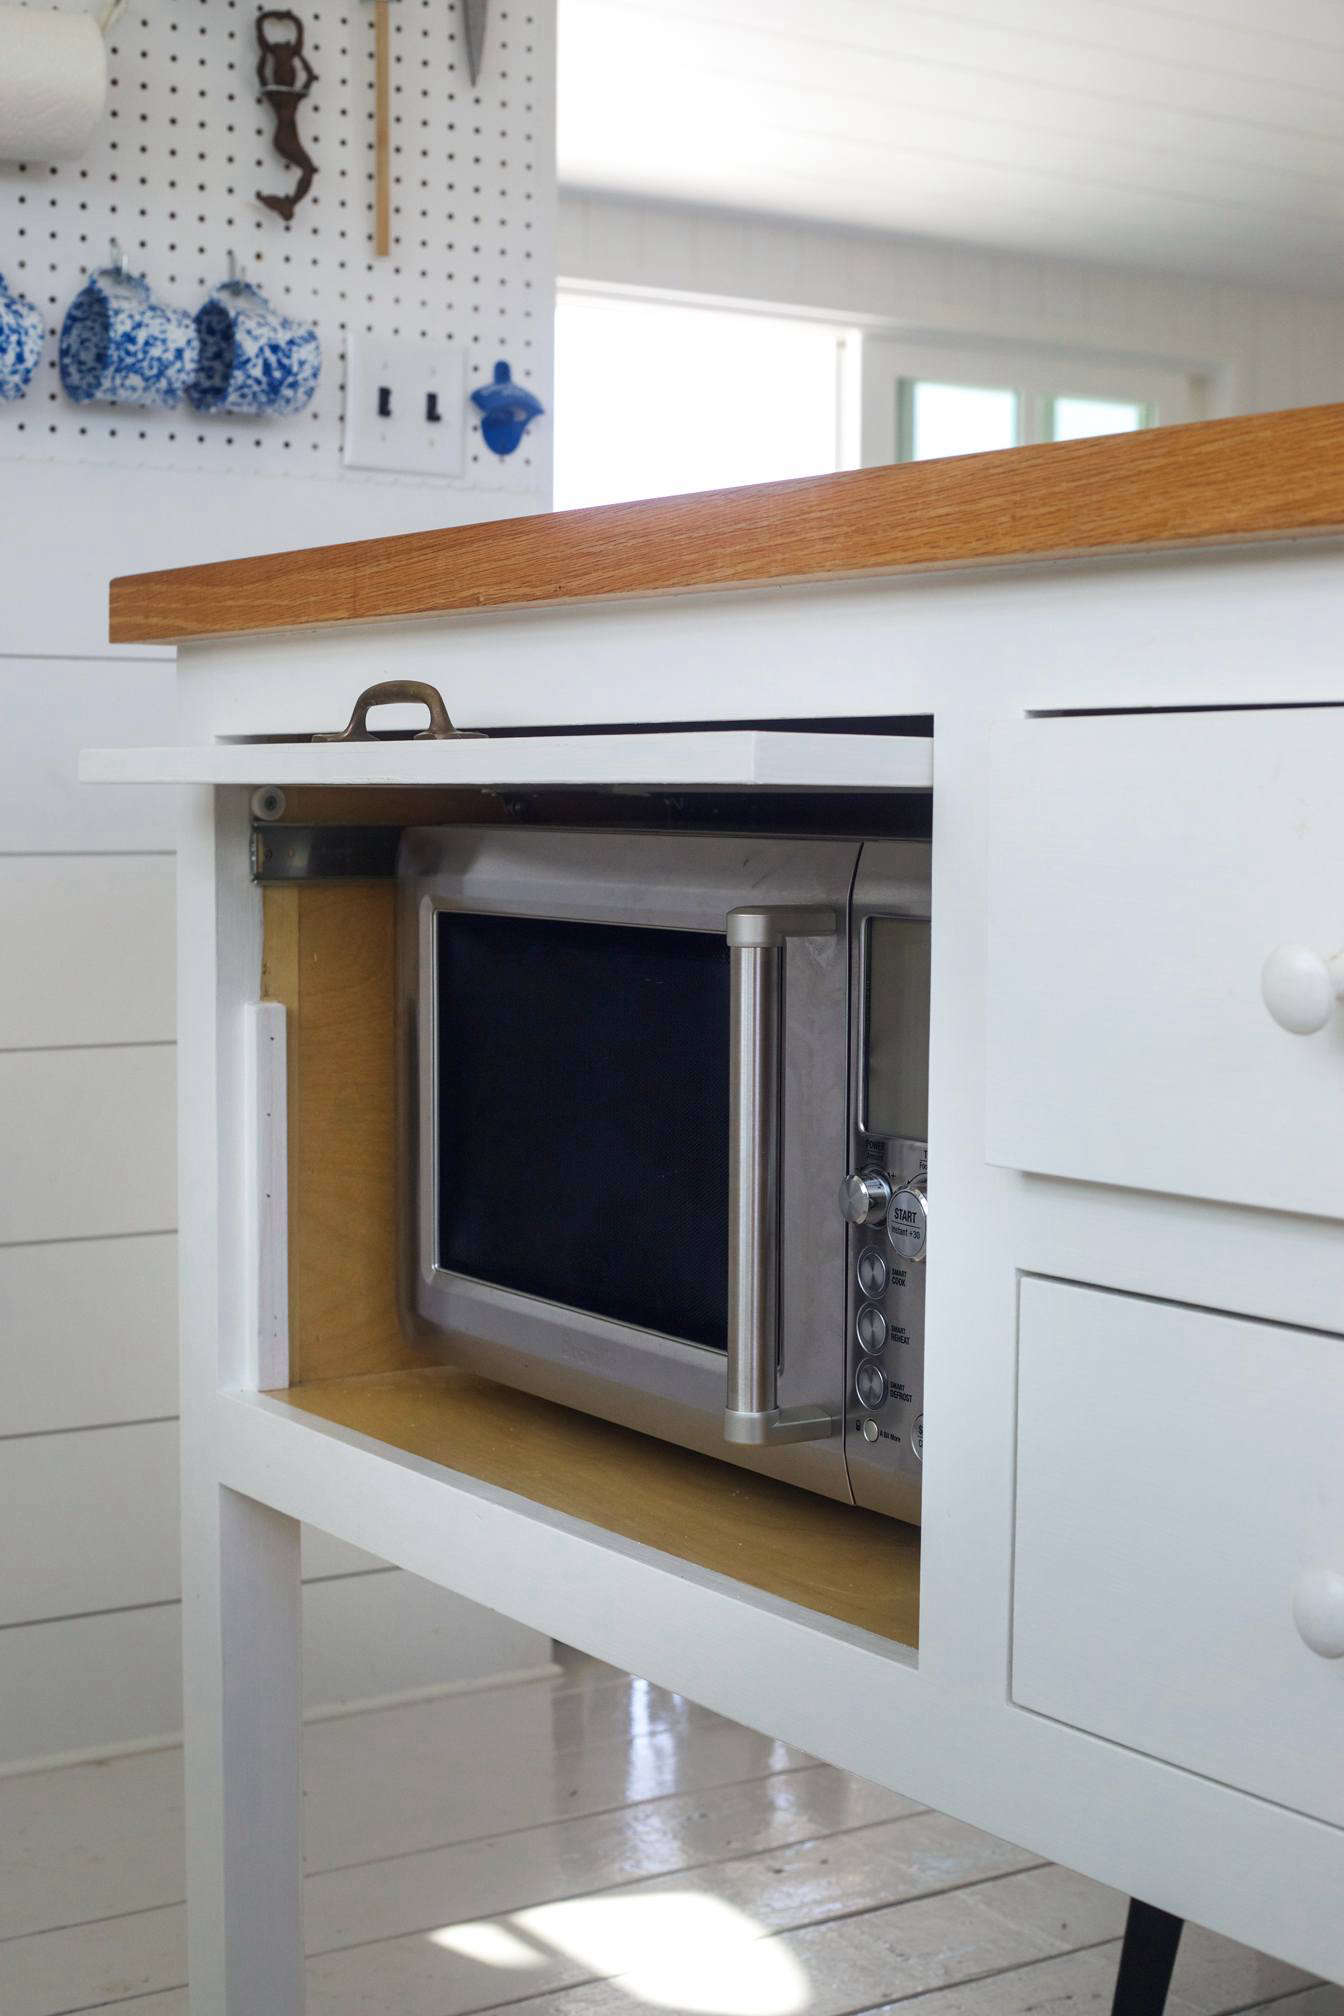 A microwaveconcealed in the kitchen island with a retractable door at the Cape Cod beach house designed byTei Carpenter andVictoria Birch. Photograph by Justine Hand fromKitchen of the Week: A Compact, Nautical Entertaining Kitchen on Cape Cod.